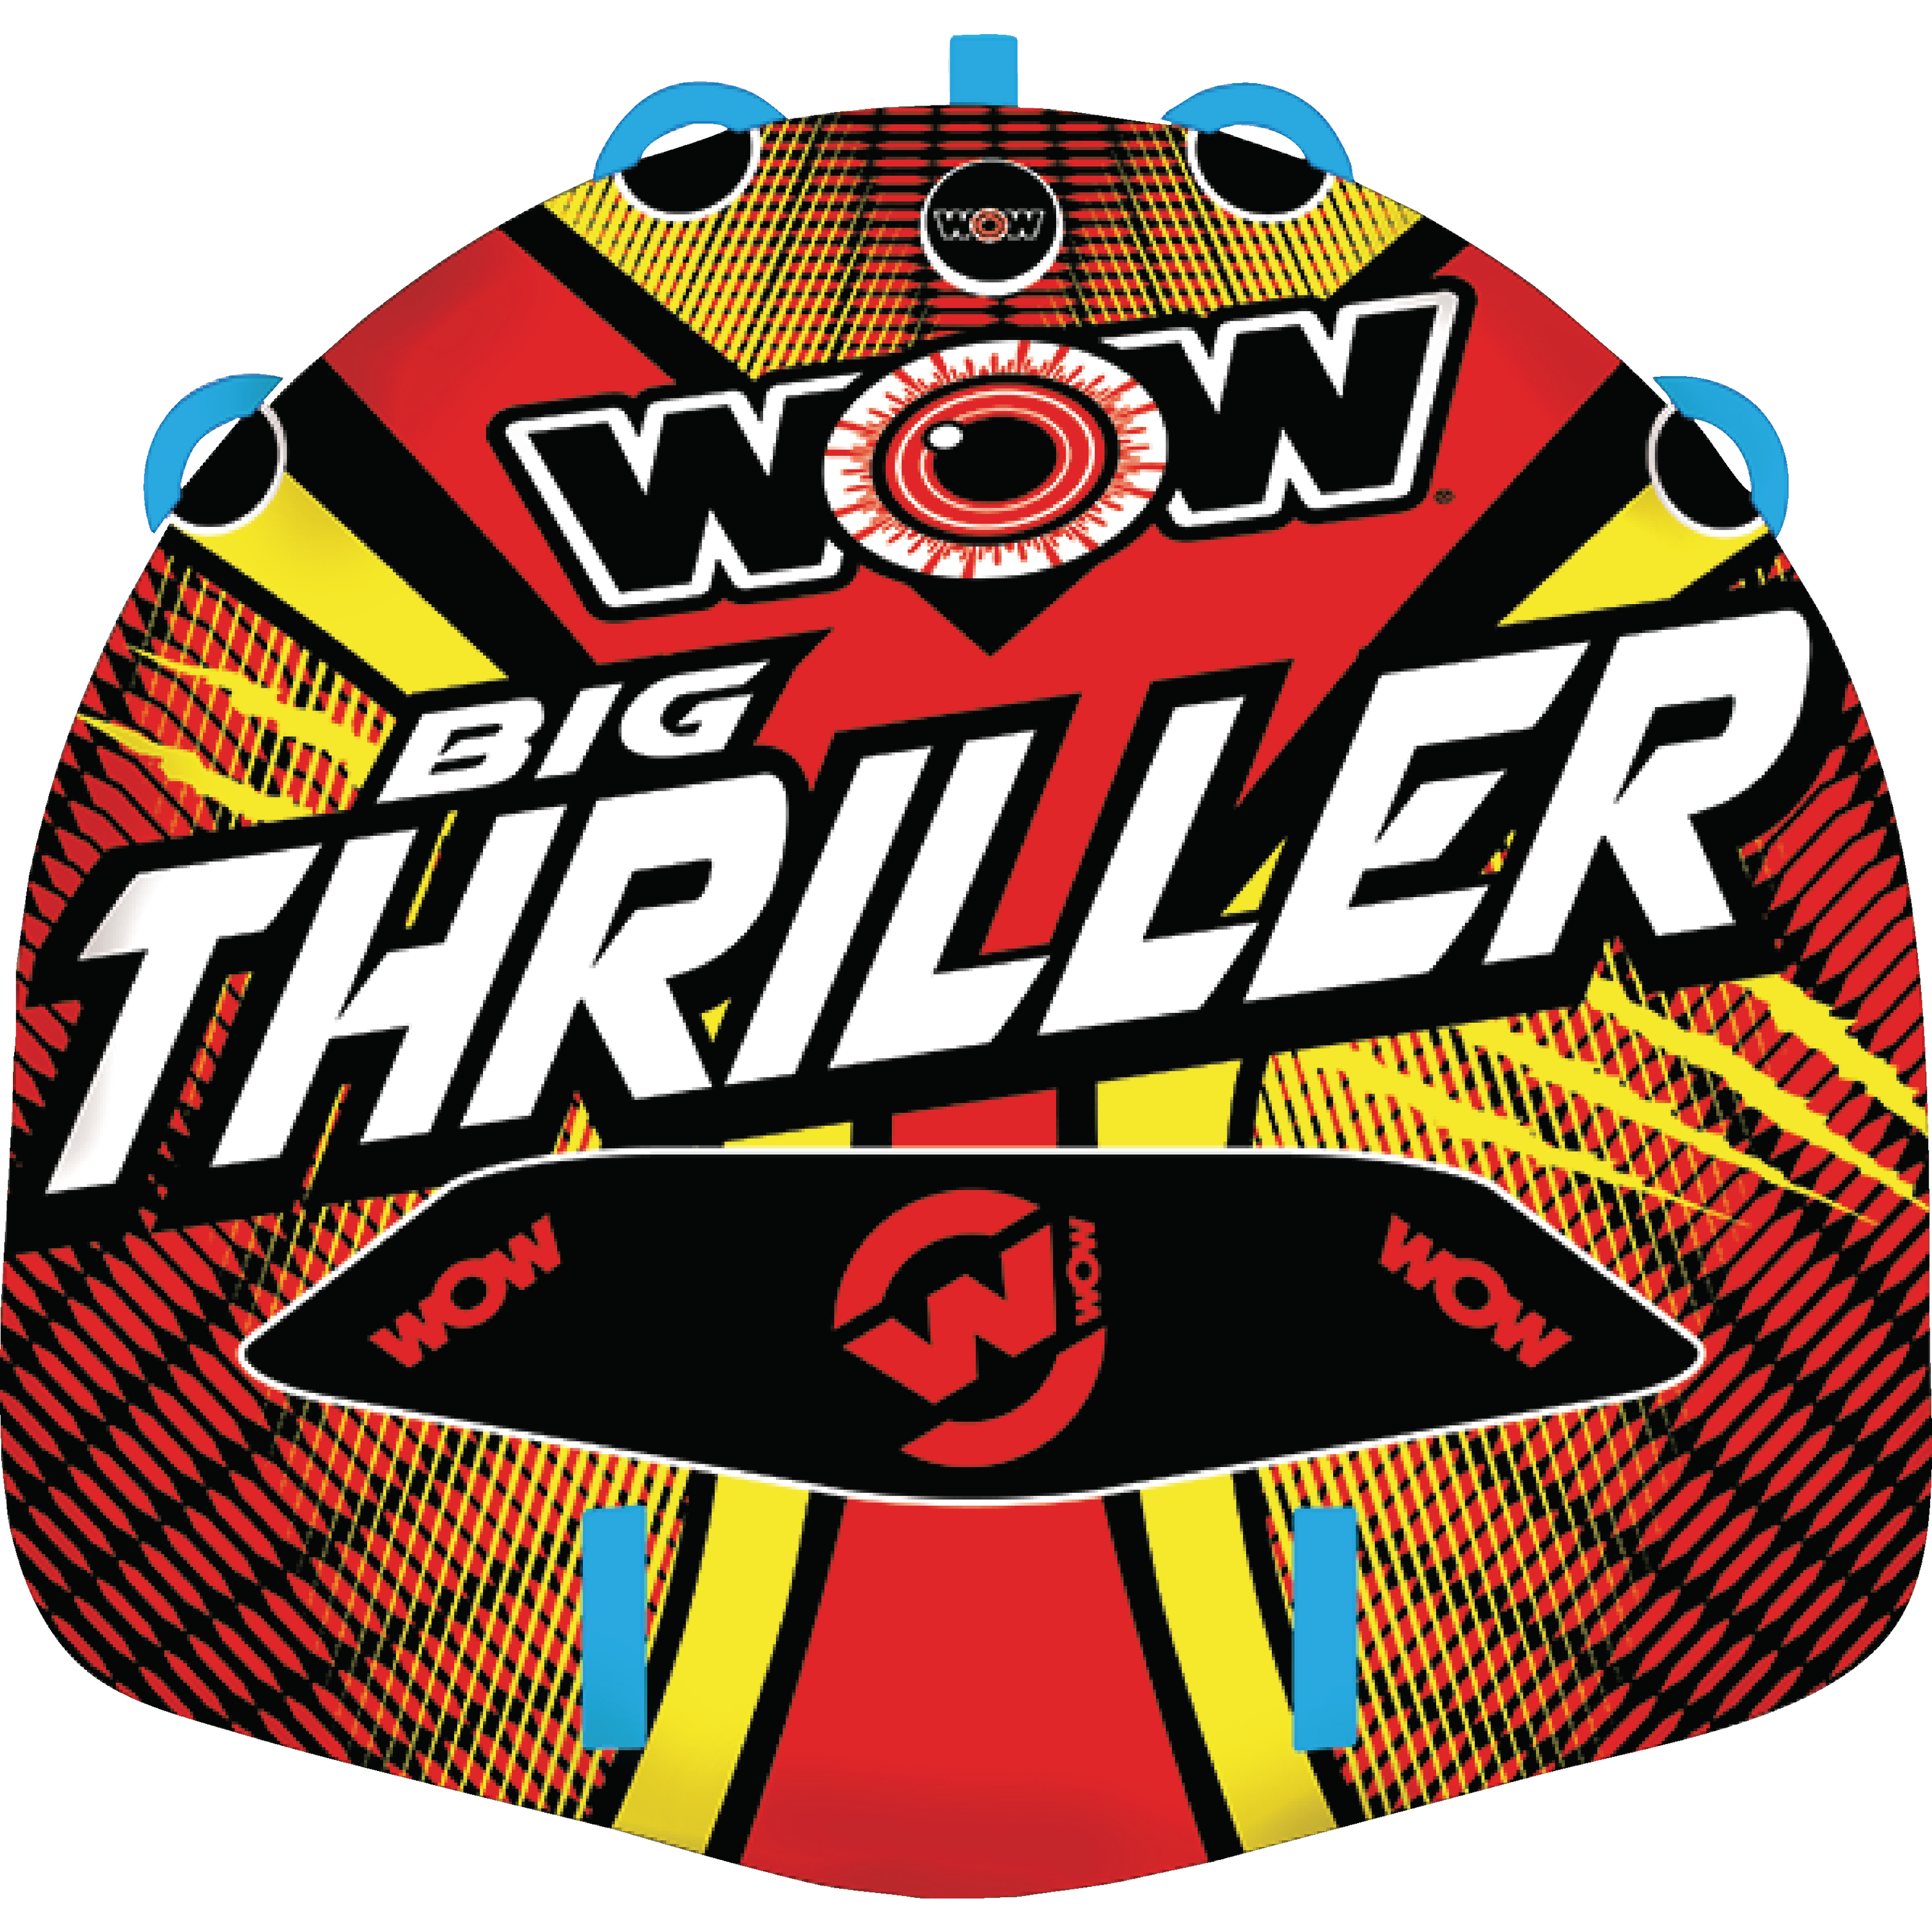 WOW 181010 Big Thriller Inflatable Towable for 1-2 Riders by WOW Watersports USA